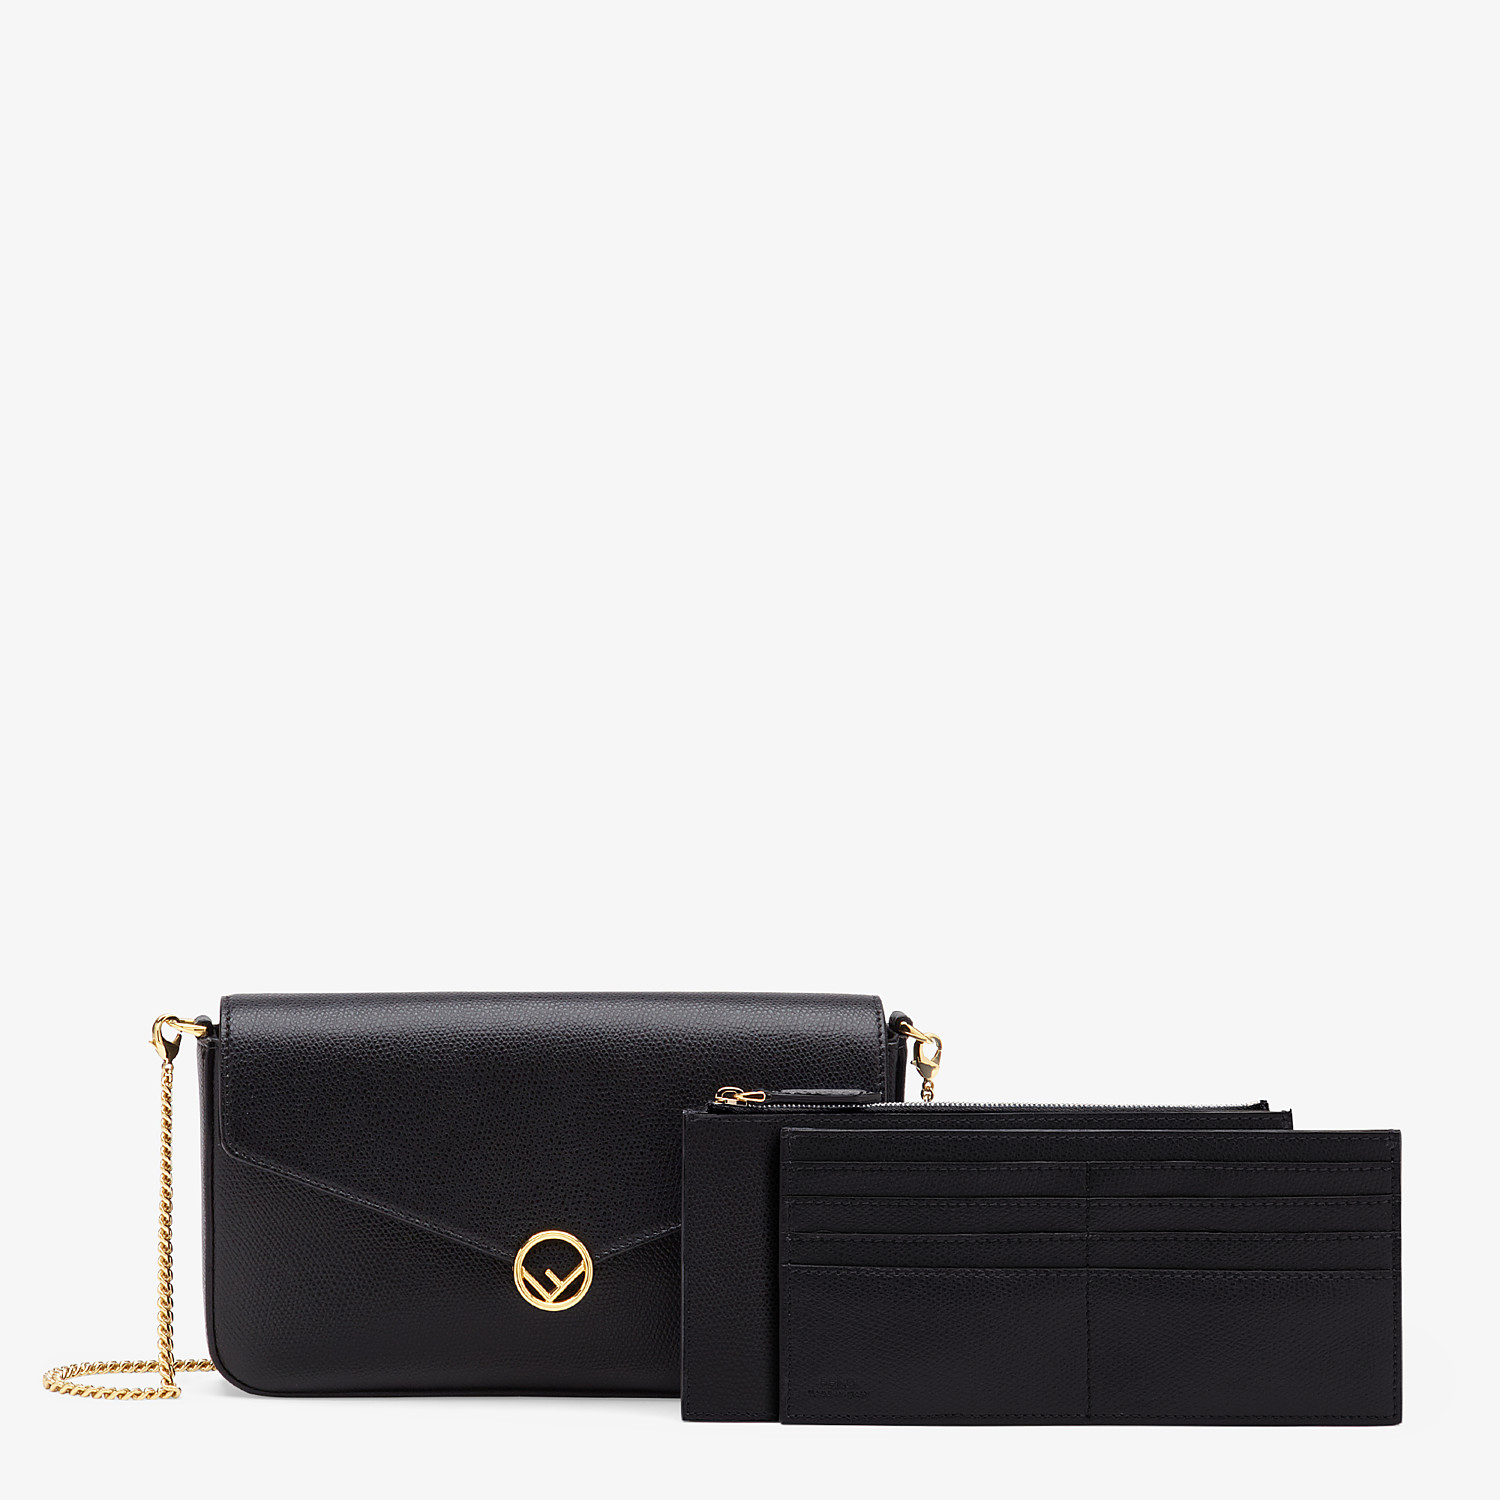 FENDI WALLET ON CHAIN WITH POUCHES - Black leather mini-bag - view 2 detail